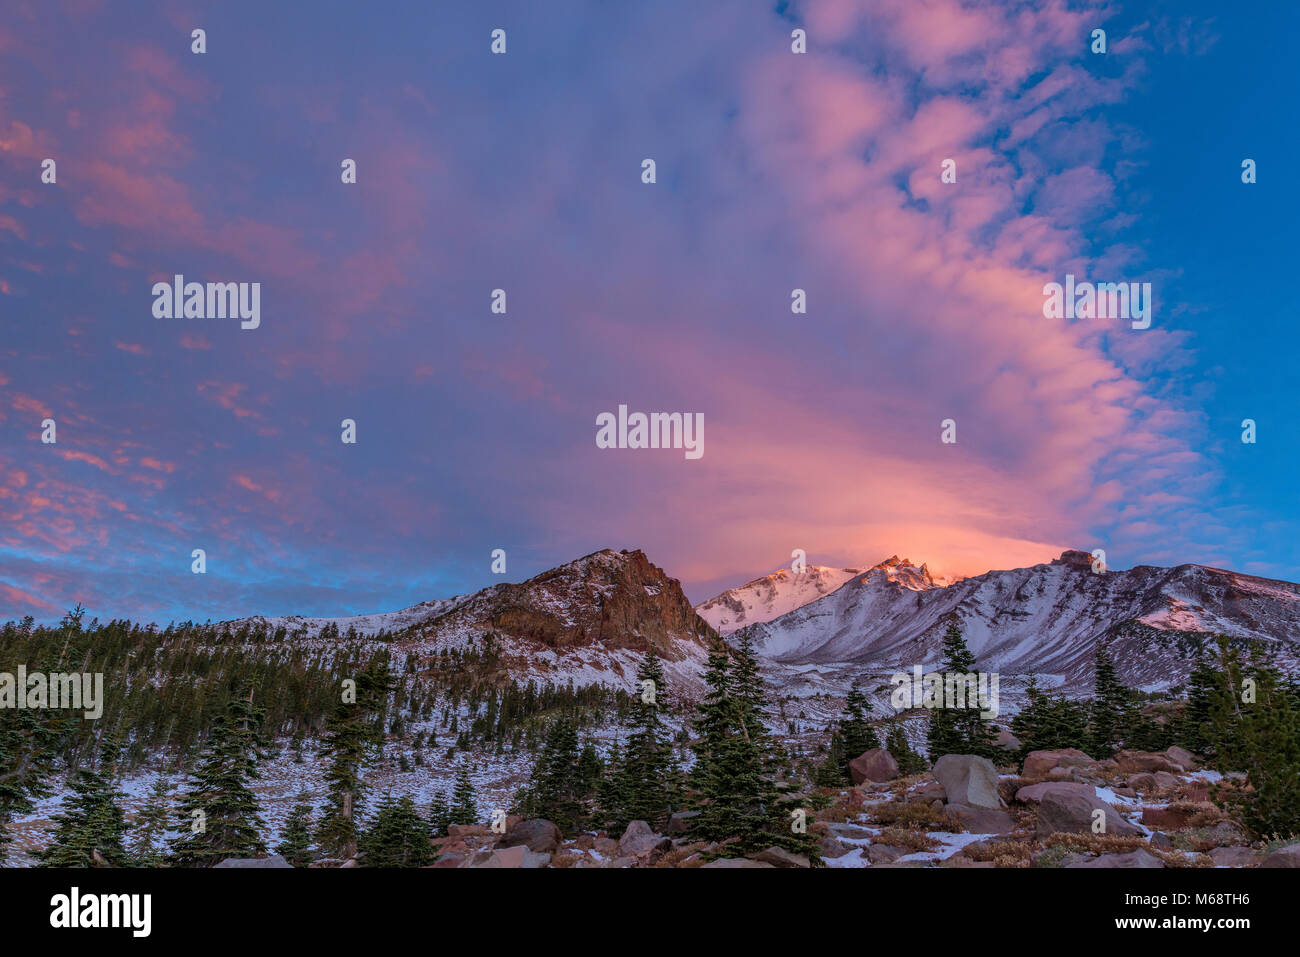 Sunrise, Panther Meadow, Mount Shasta, Shasta-Trinity National Forest, California - Stock Image